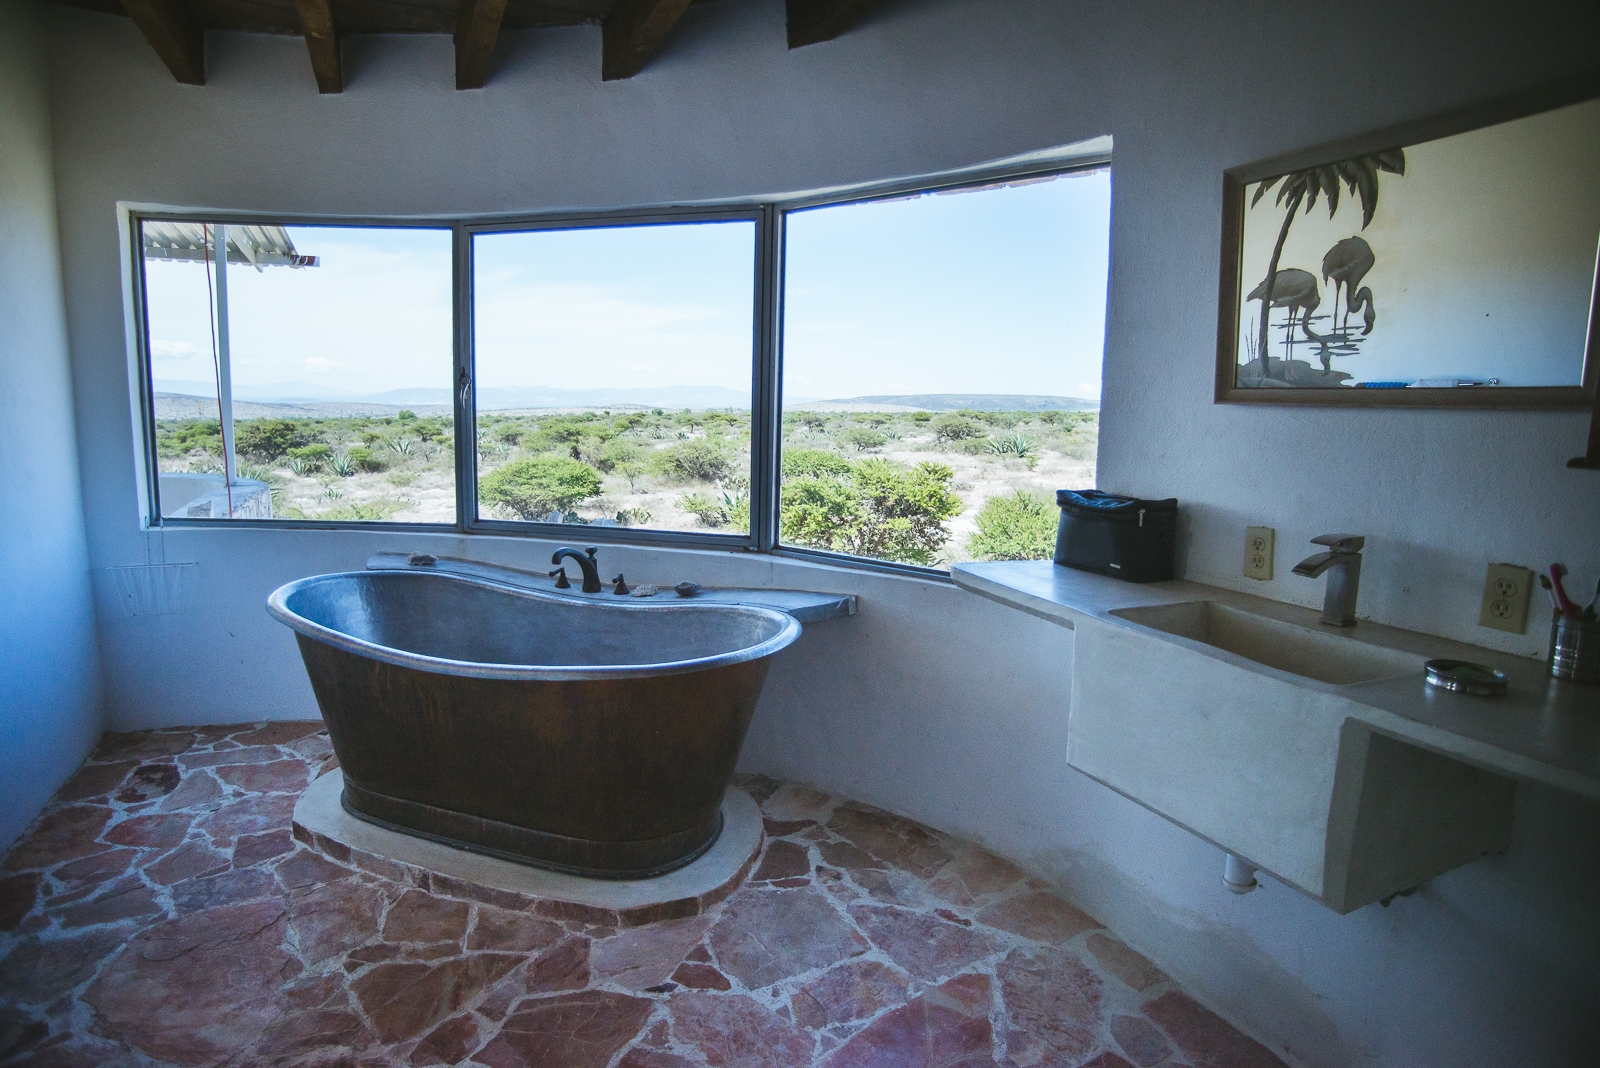 Ranch for sale in Pozos   Real Estate Experts in Mineral de Pozos ...